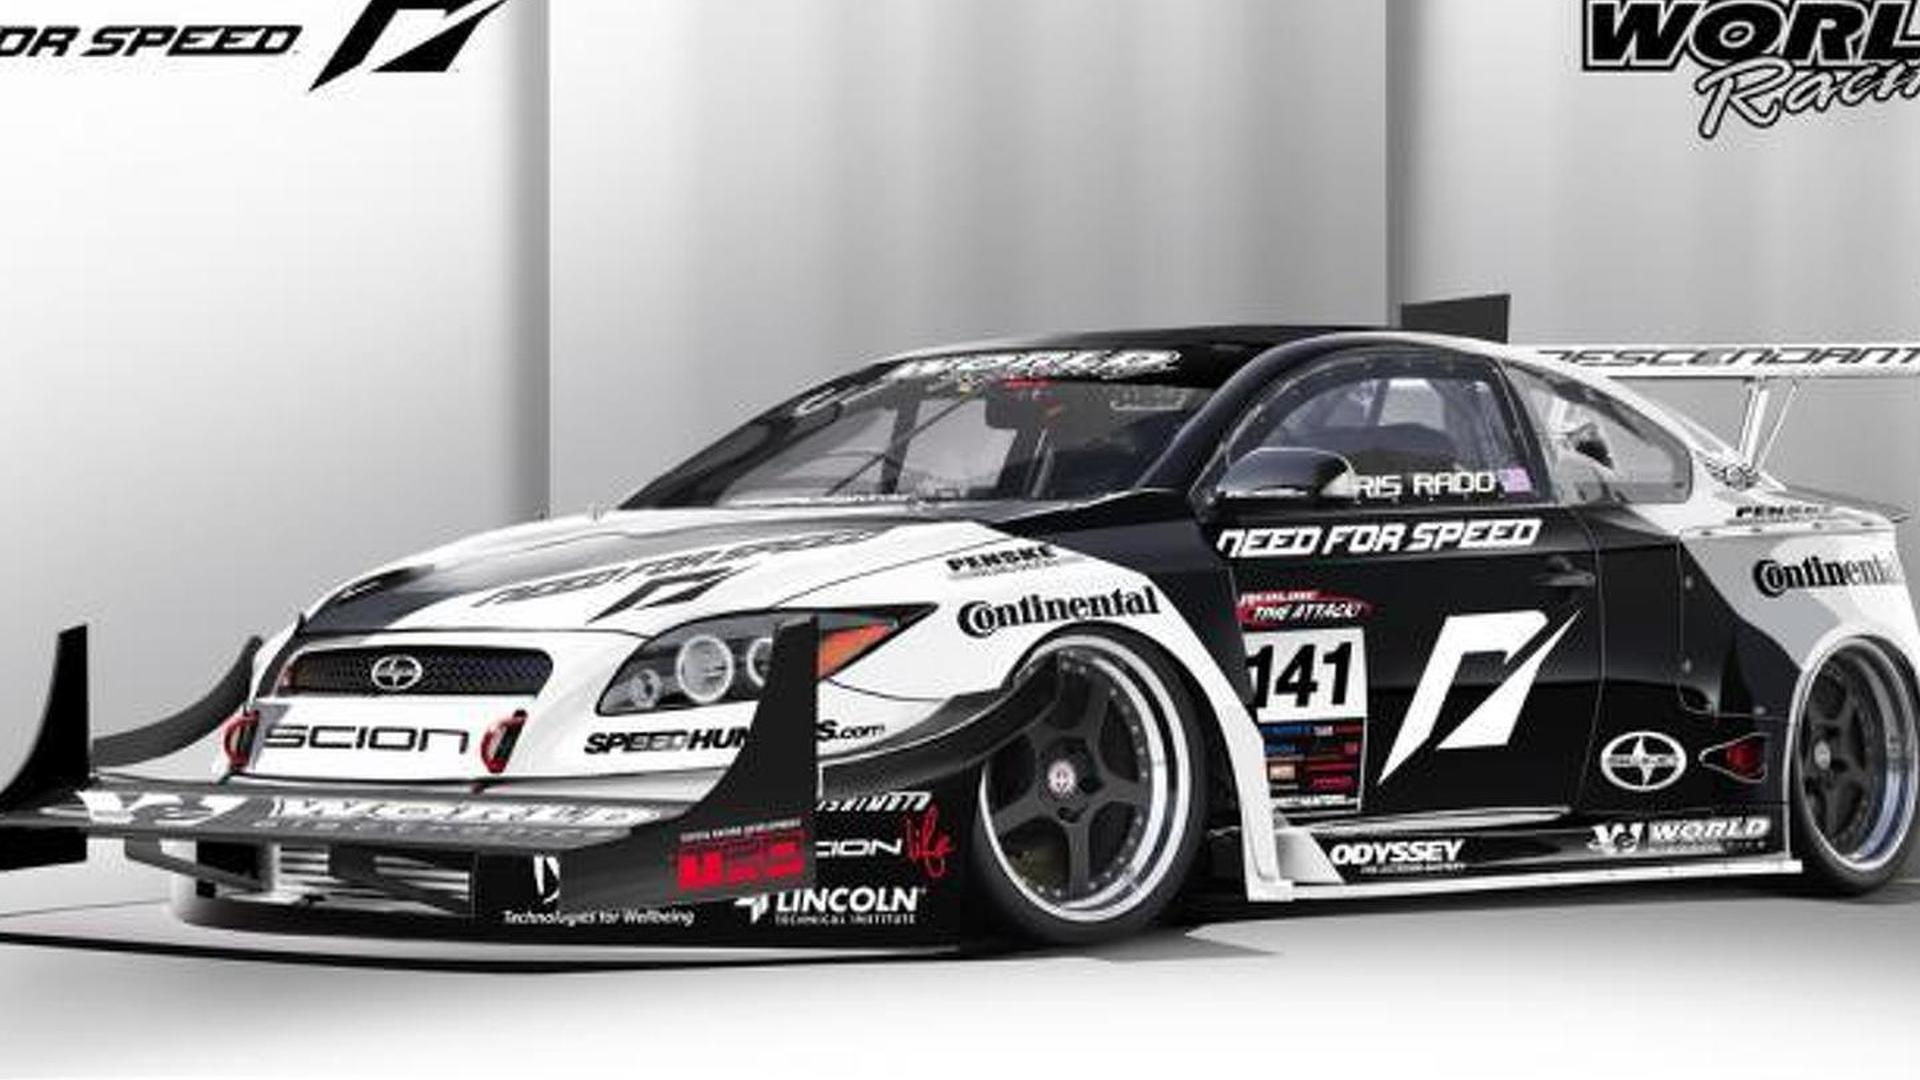 1100hp scion tc awd racer by team nfs first pics. Black Bedroom Furniture Sets. Home Design Ideas